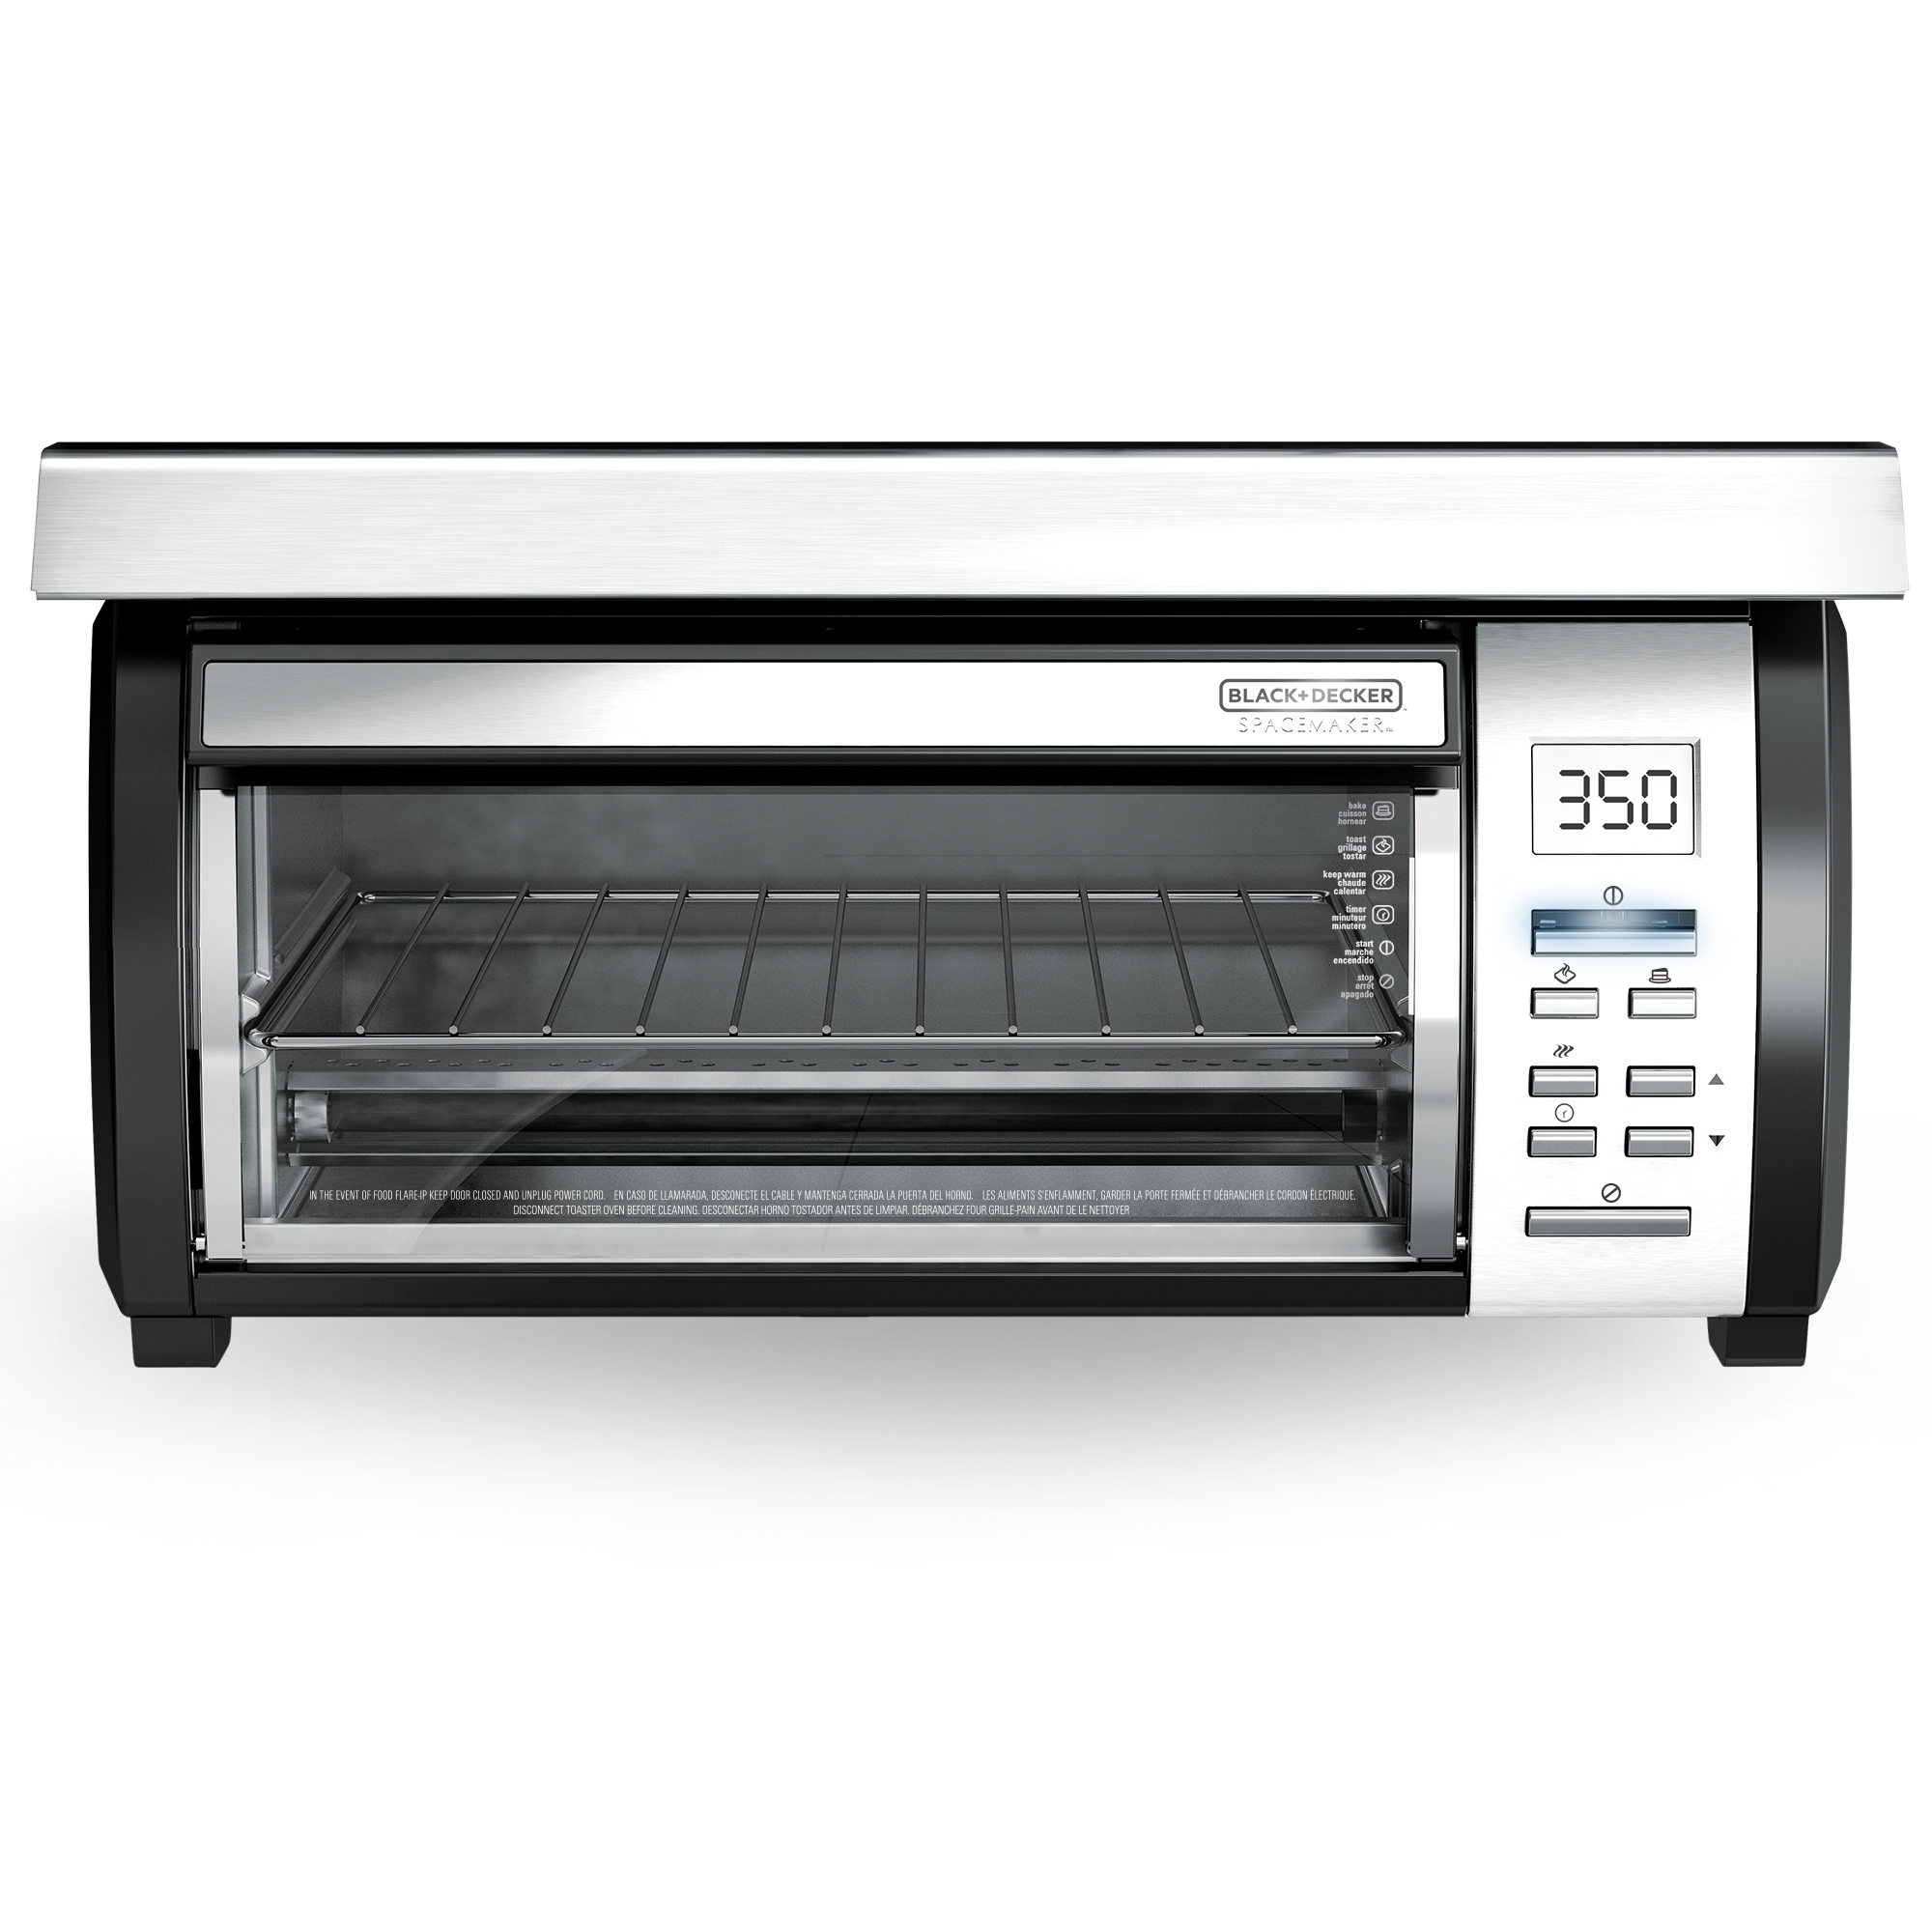 Countertop Oven Black And Decker : Black and Decker SpaceMaker? Toaster Oven TROS1000D